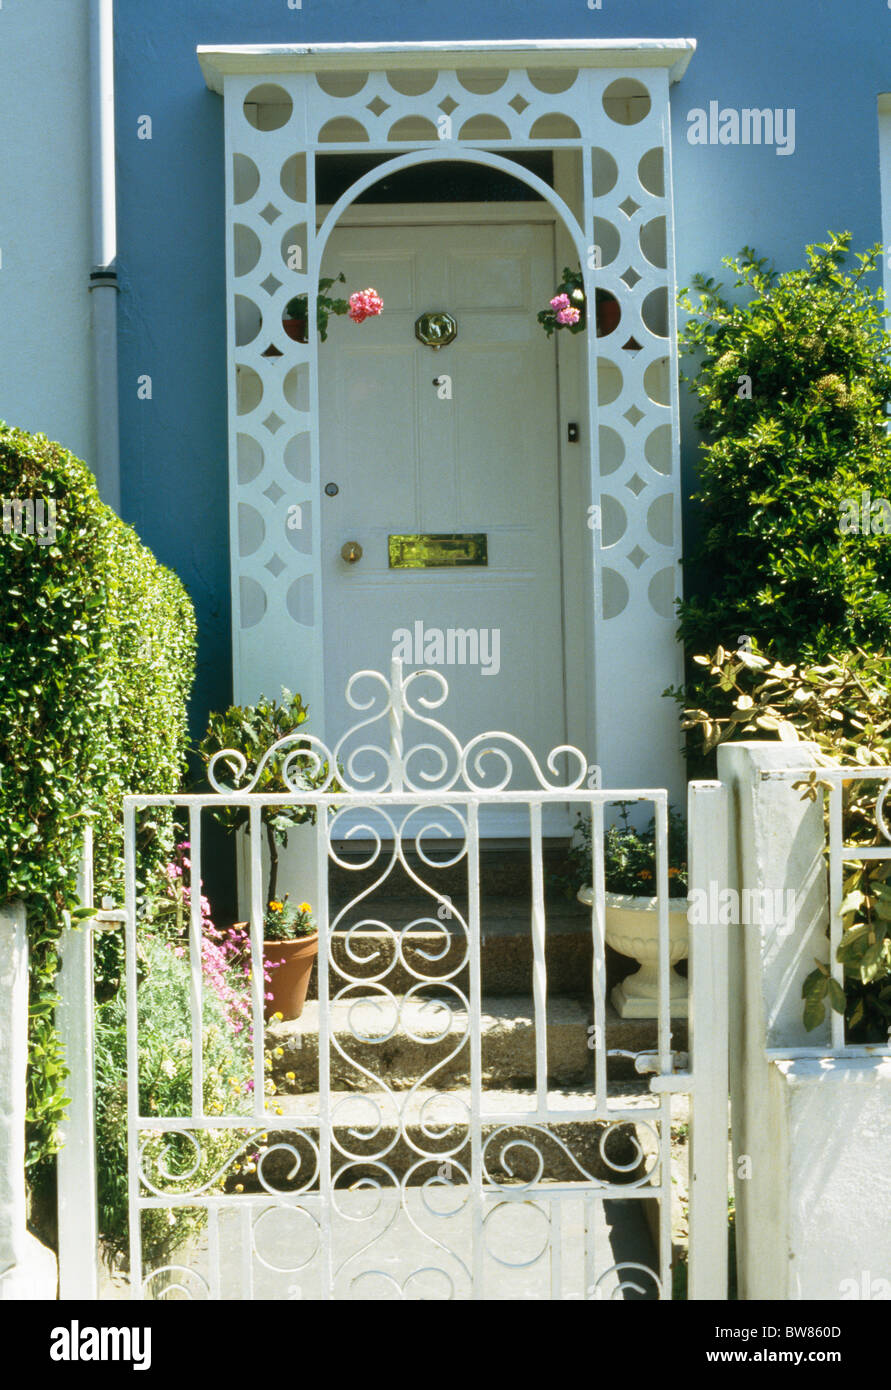 White Wrought Iron Gate In Front Of Small House With White